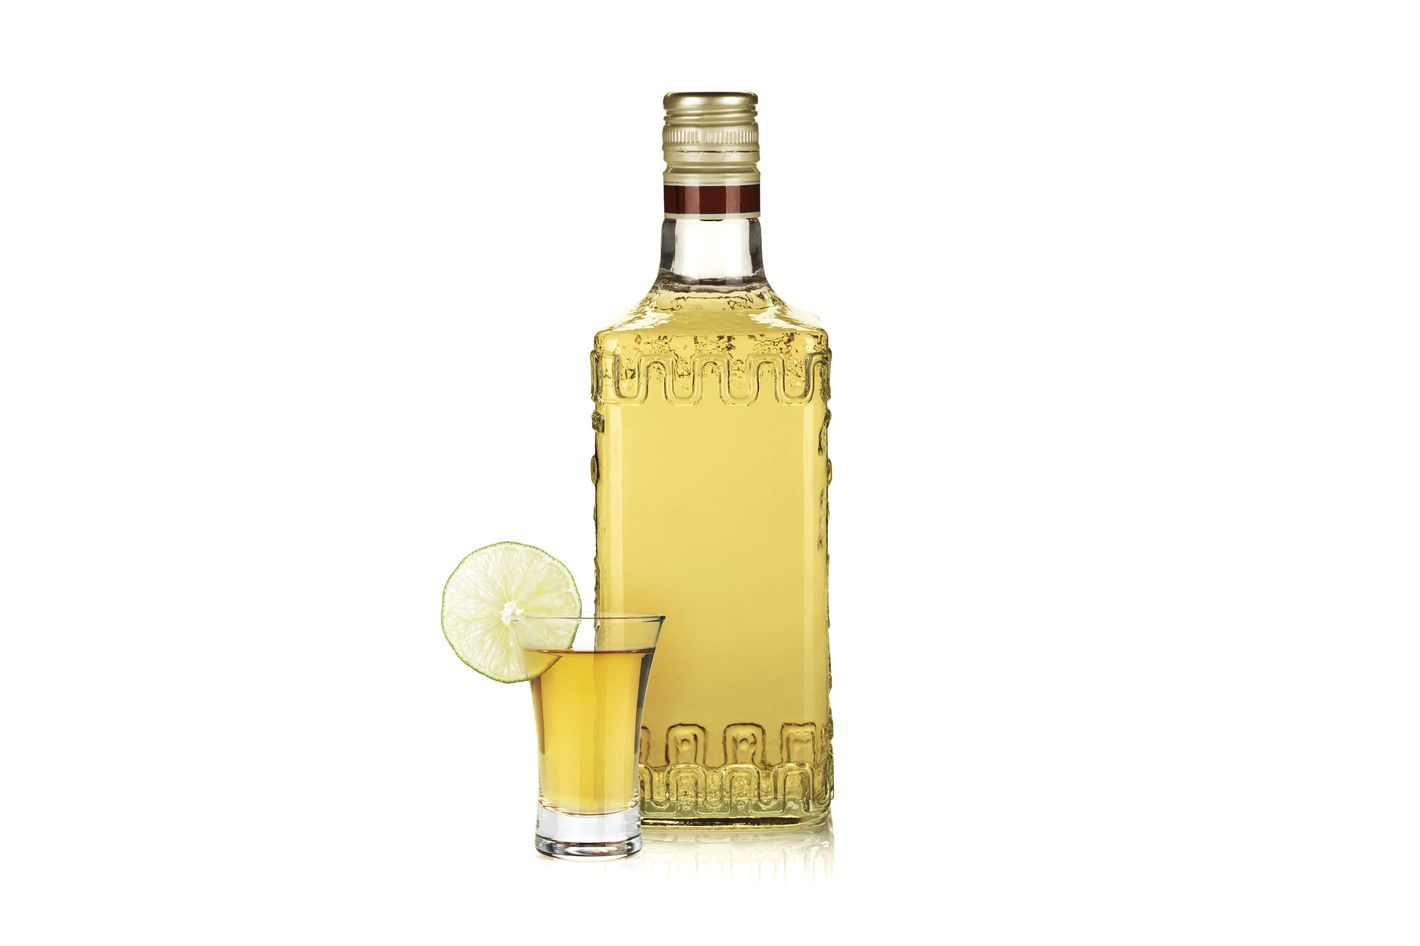 Tequila promotes weight loss and helps with diabetes